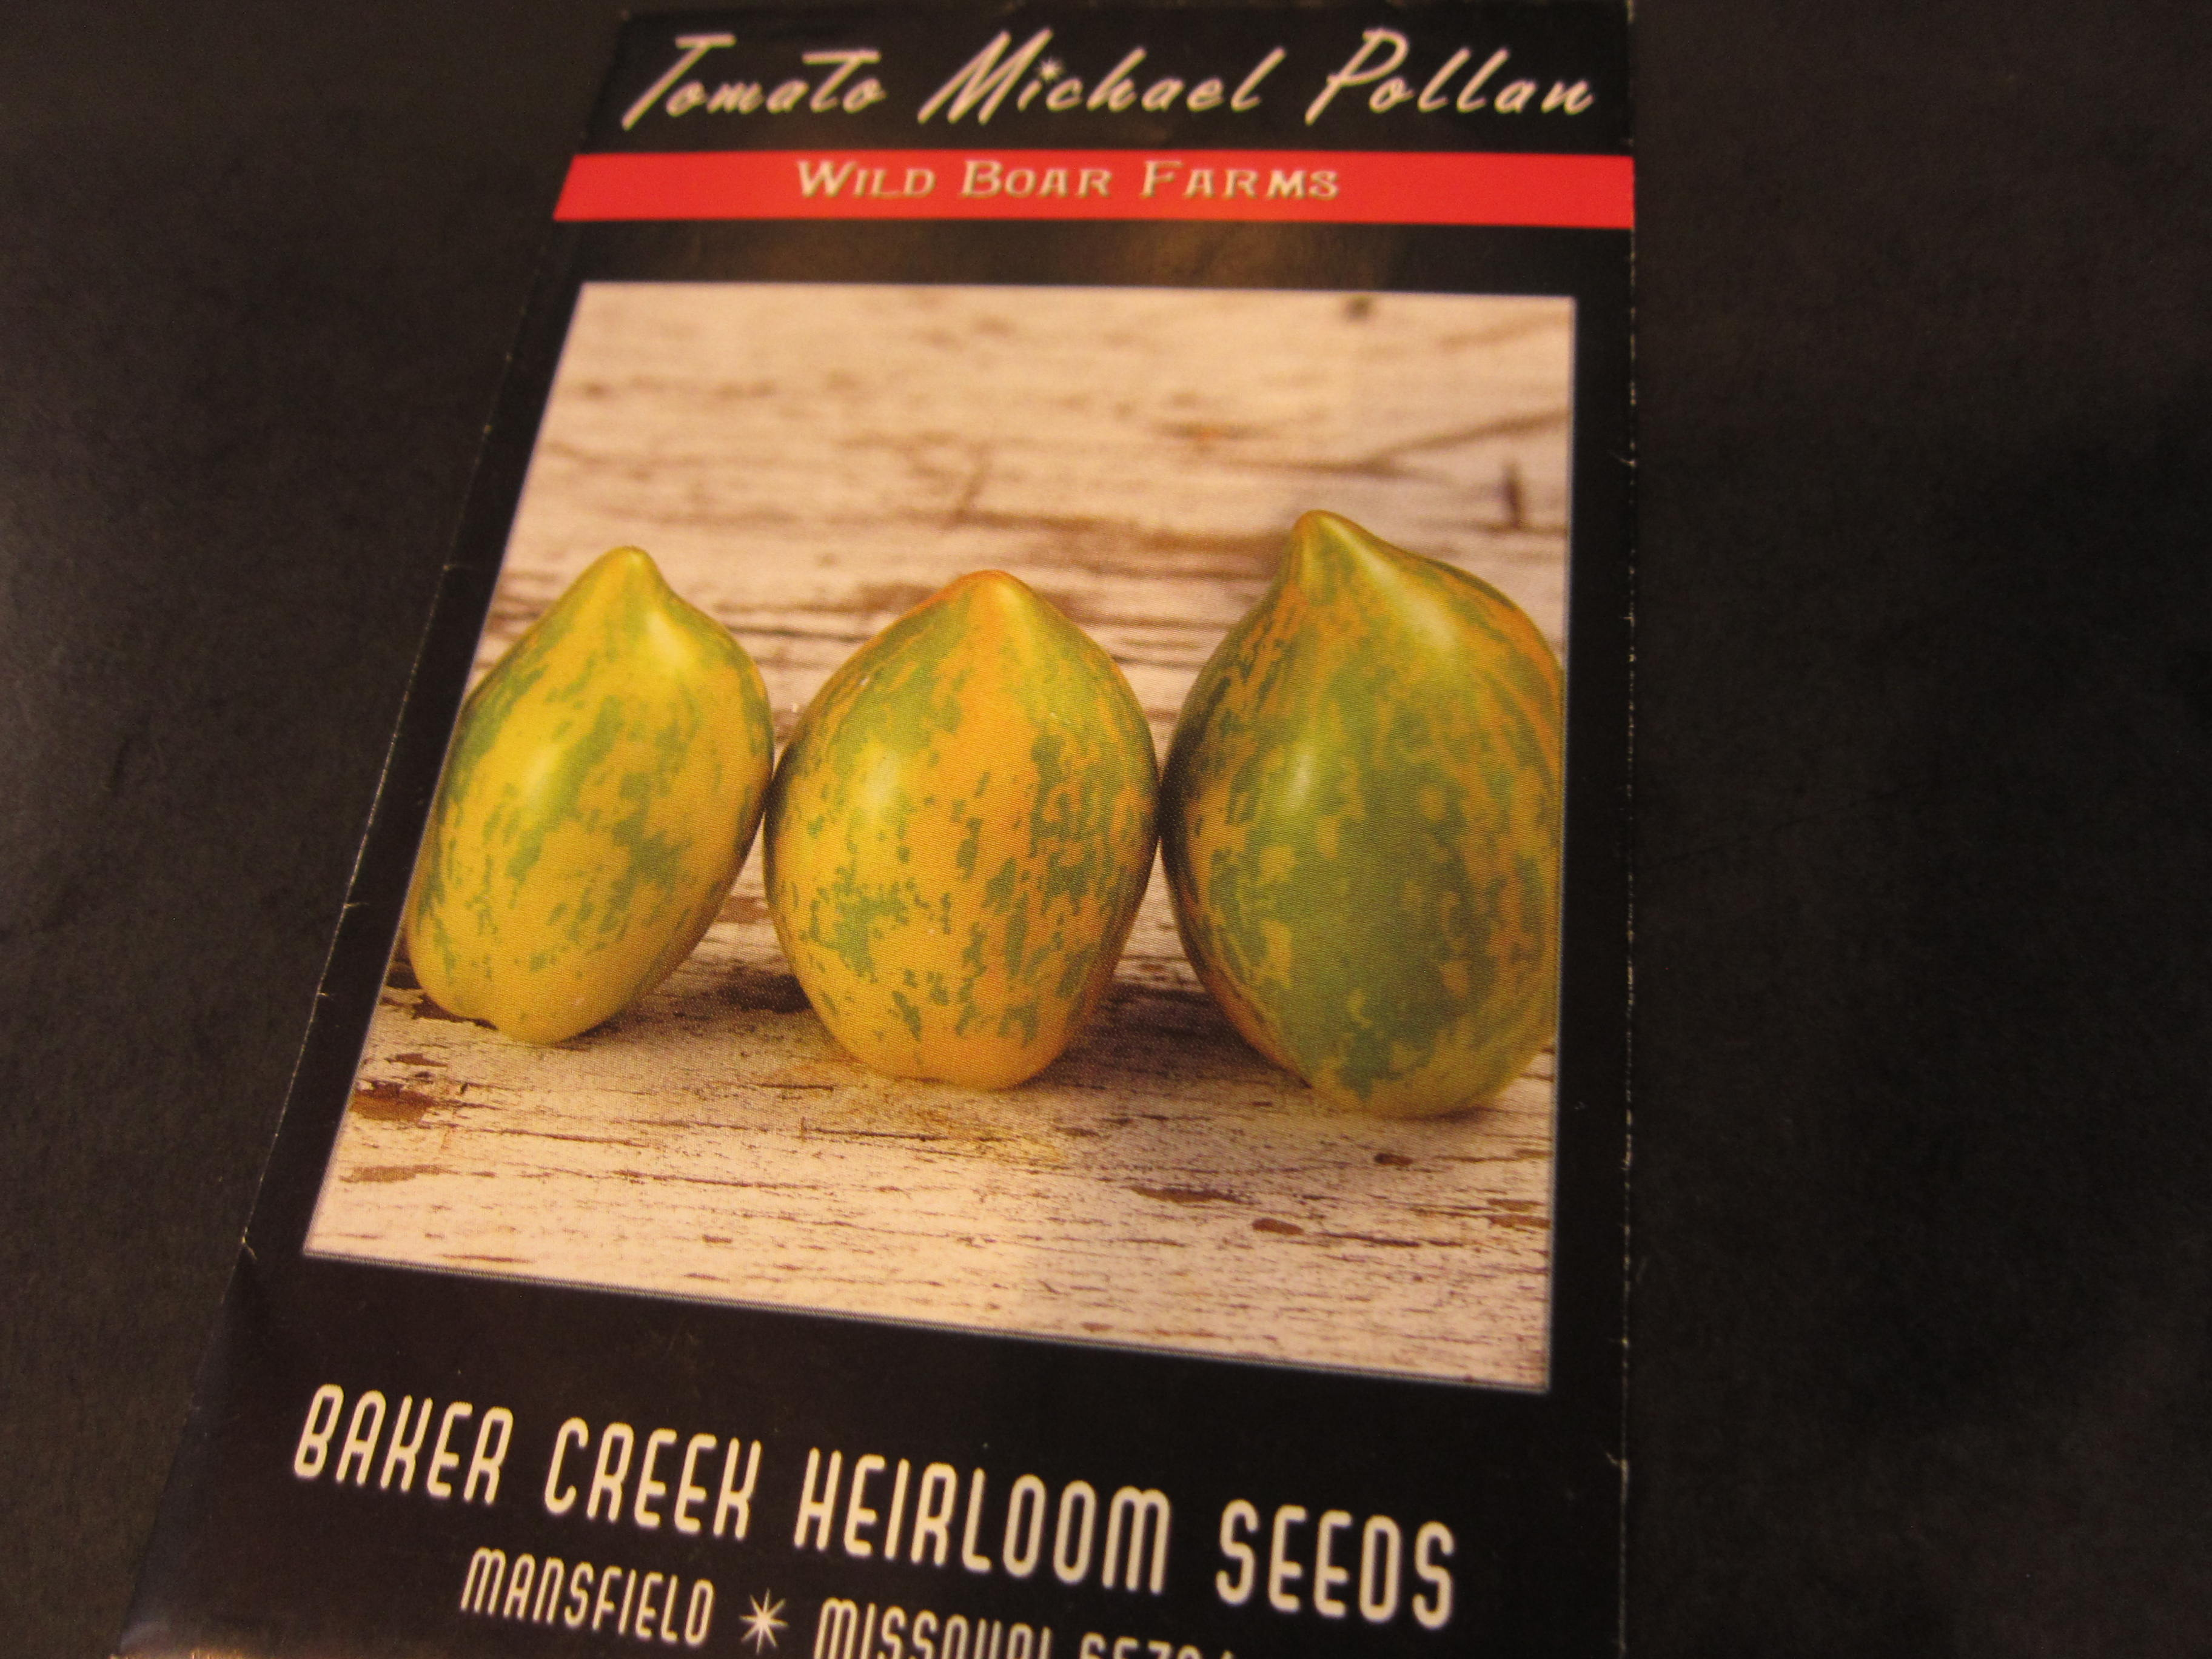 Michael Pollan has inspired this tomato bred by Wild Boar Farms.